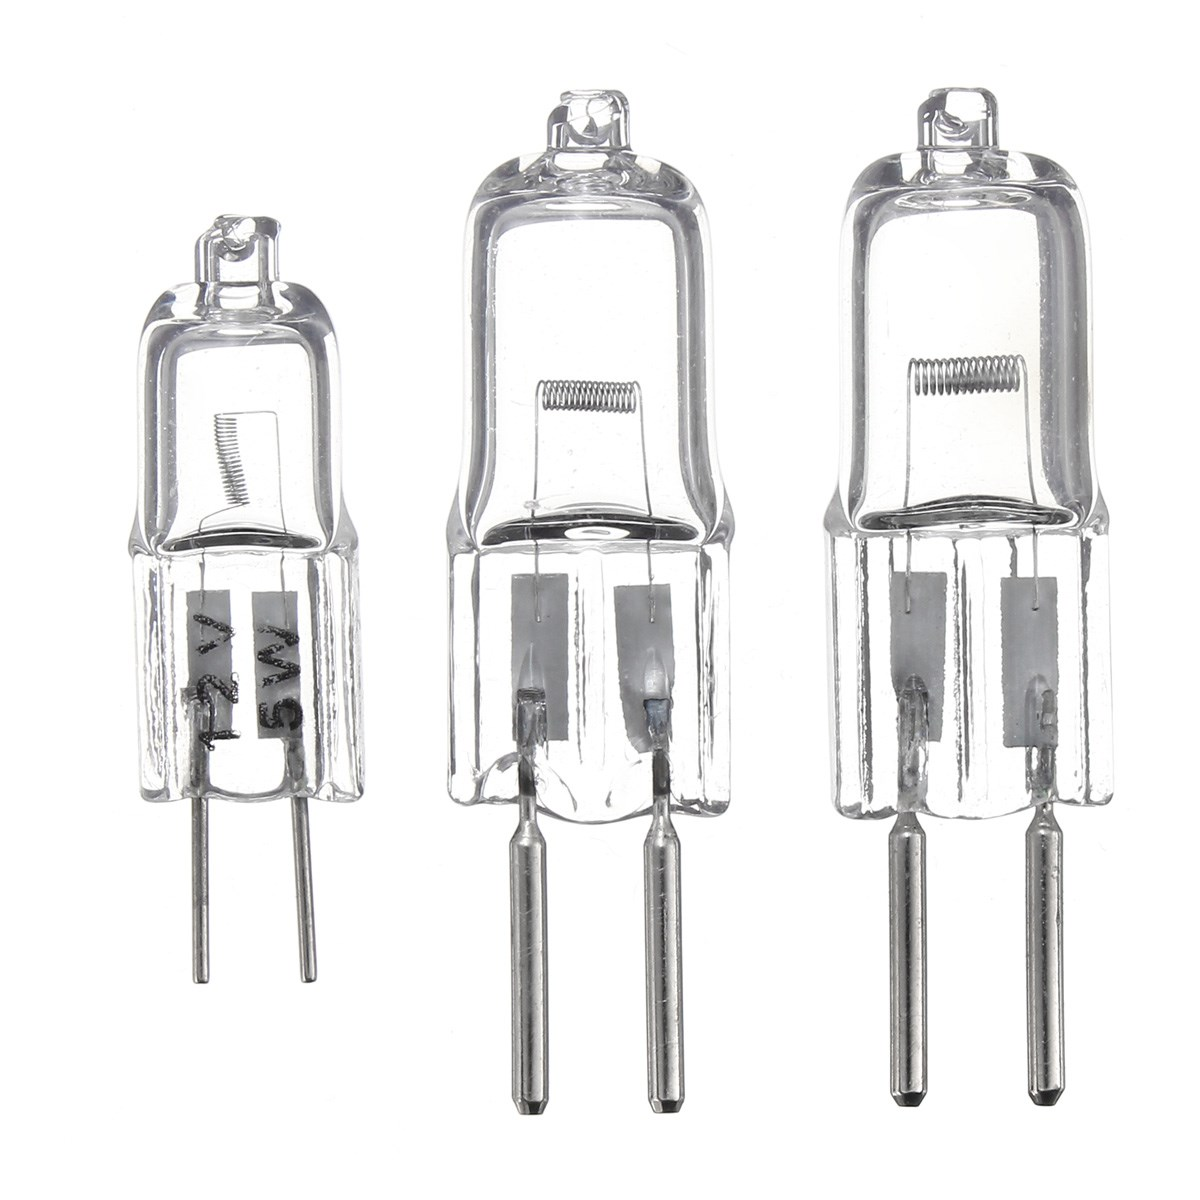 12 Volt Dc Lighting Fixtures